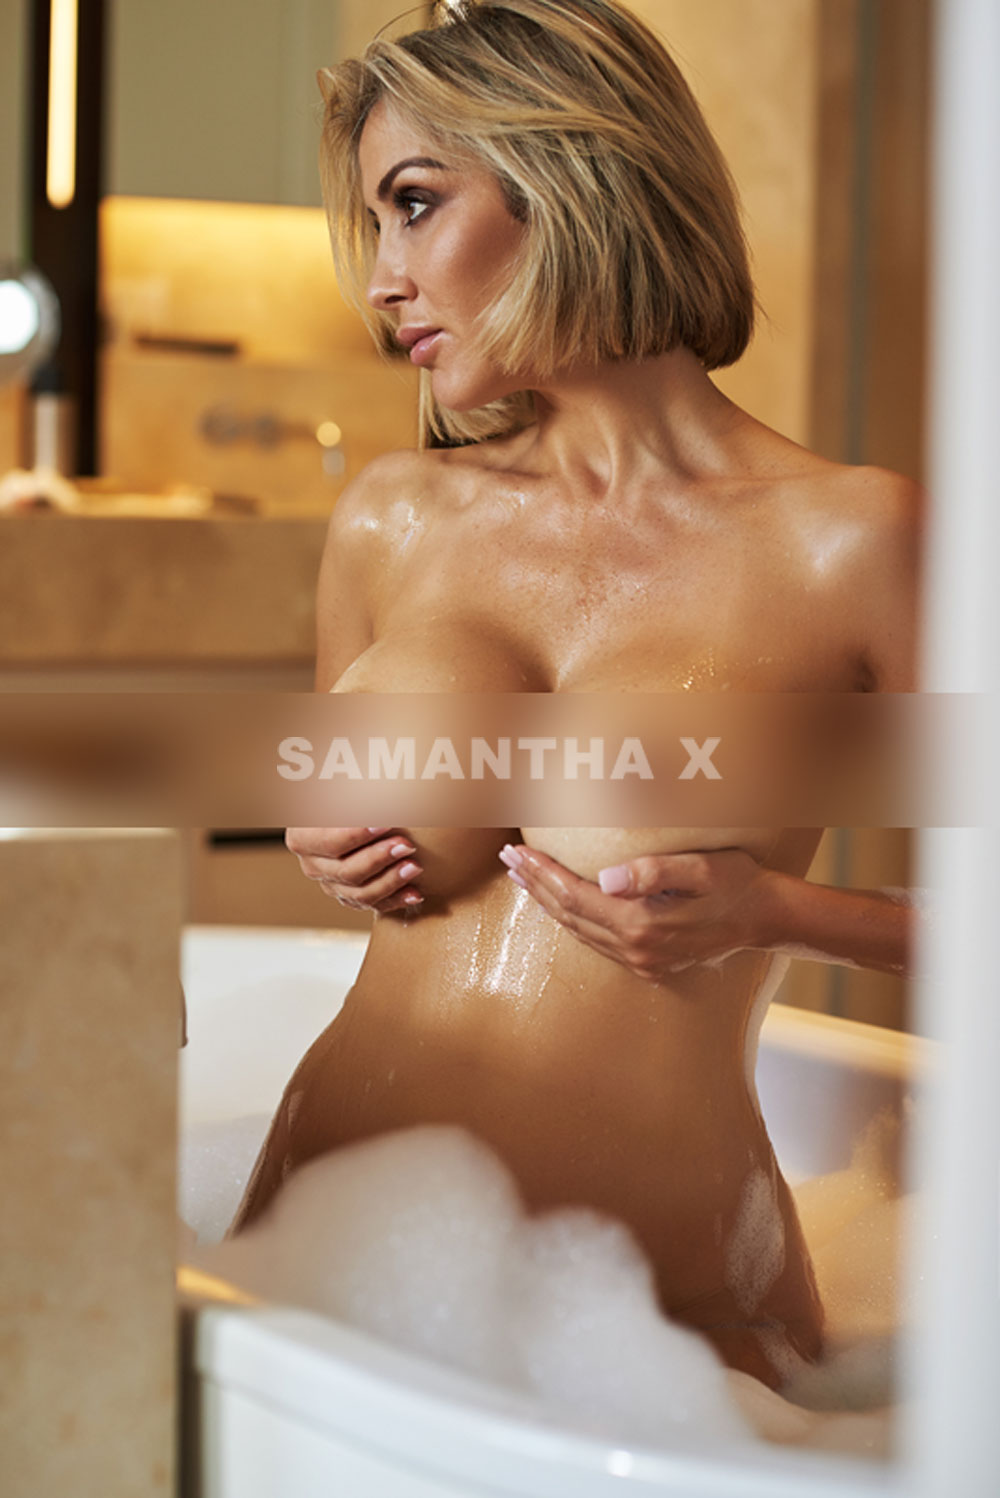 Samantha X will be in Melbourne next week! 31st July - 6th August